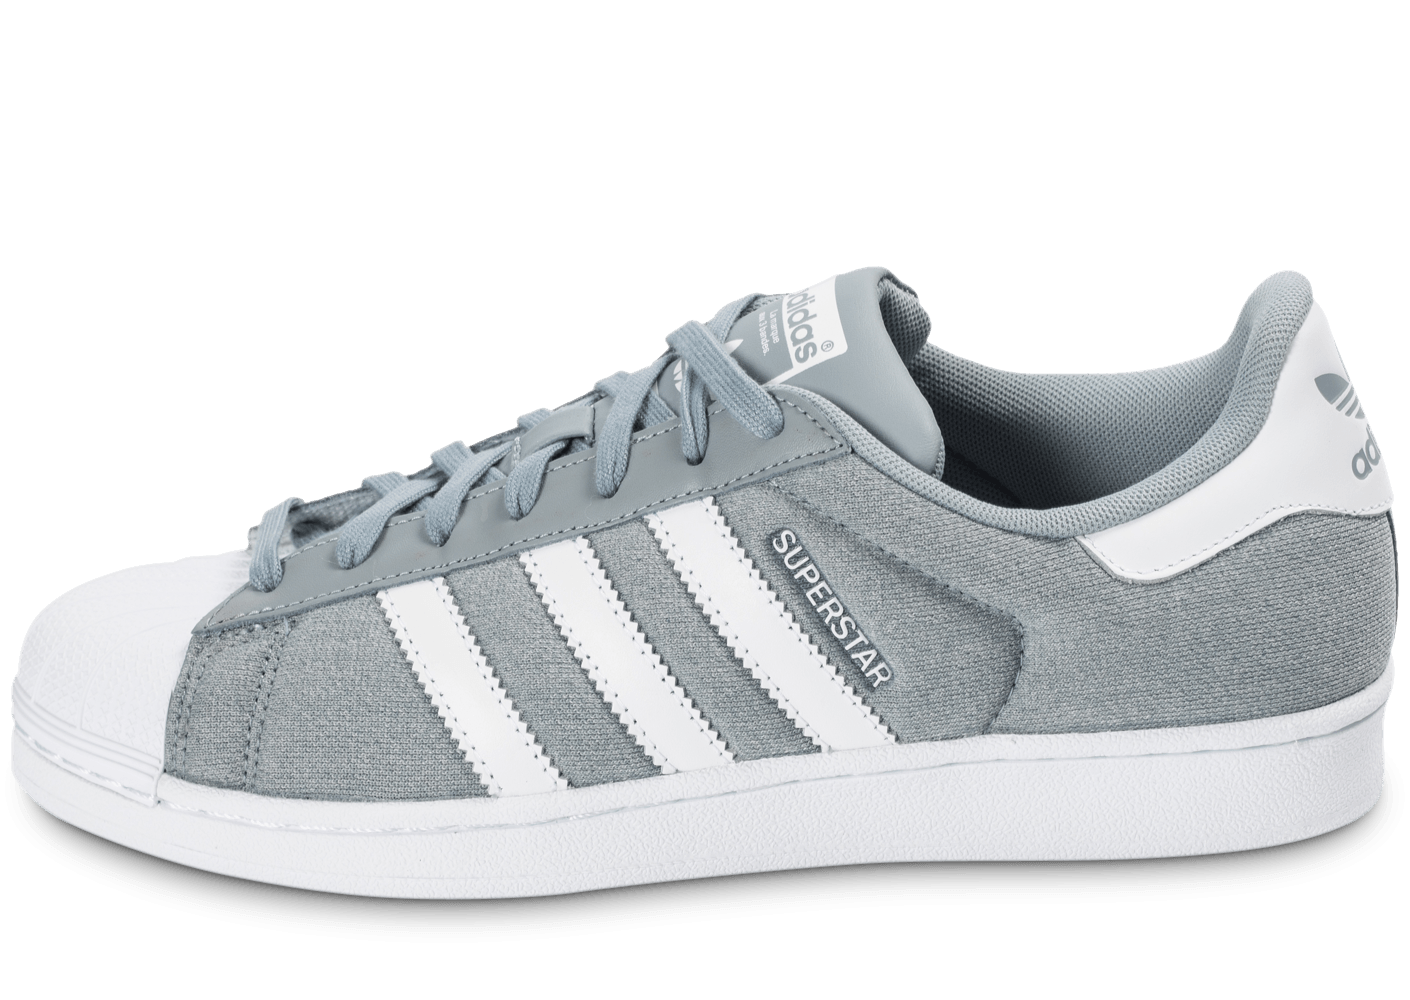 adidas Superstar Summer Pack grise - Chaussures Baskets homme - Chausport